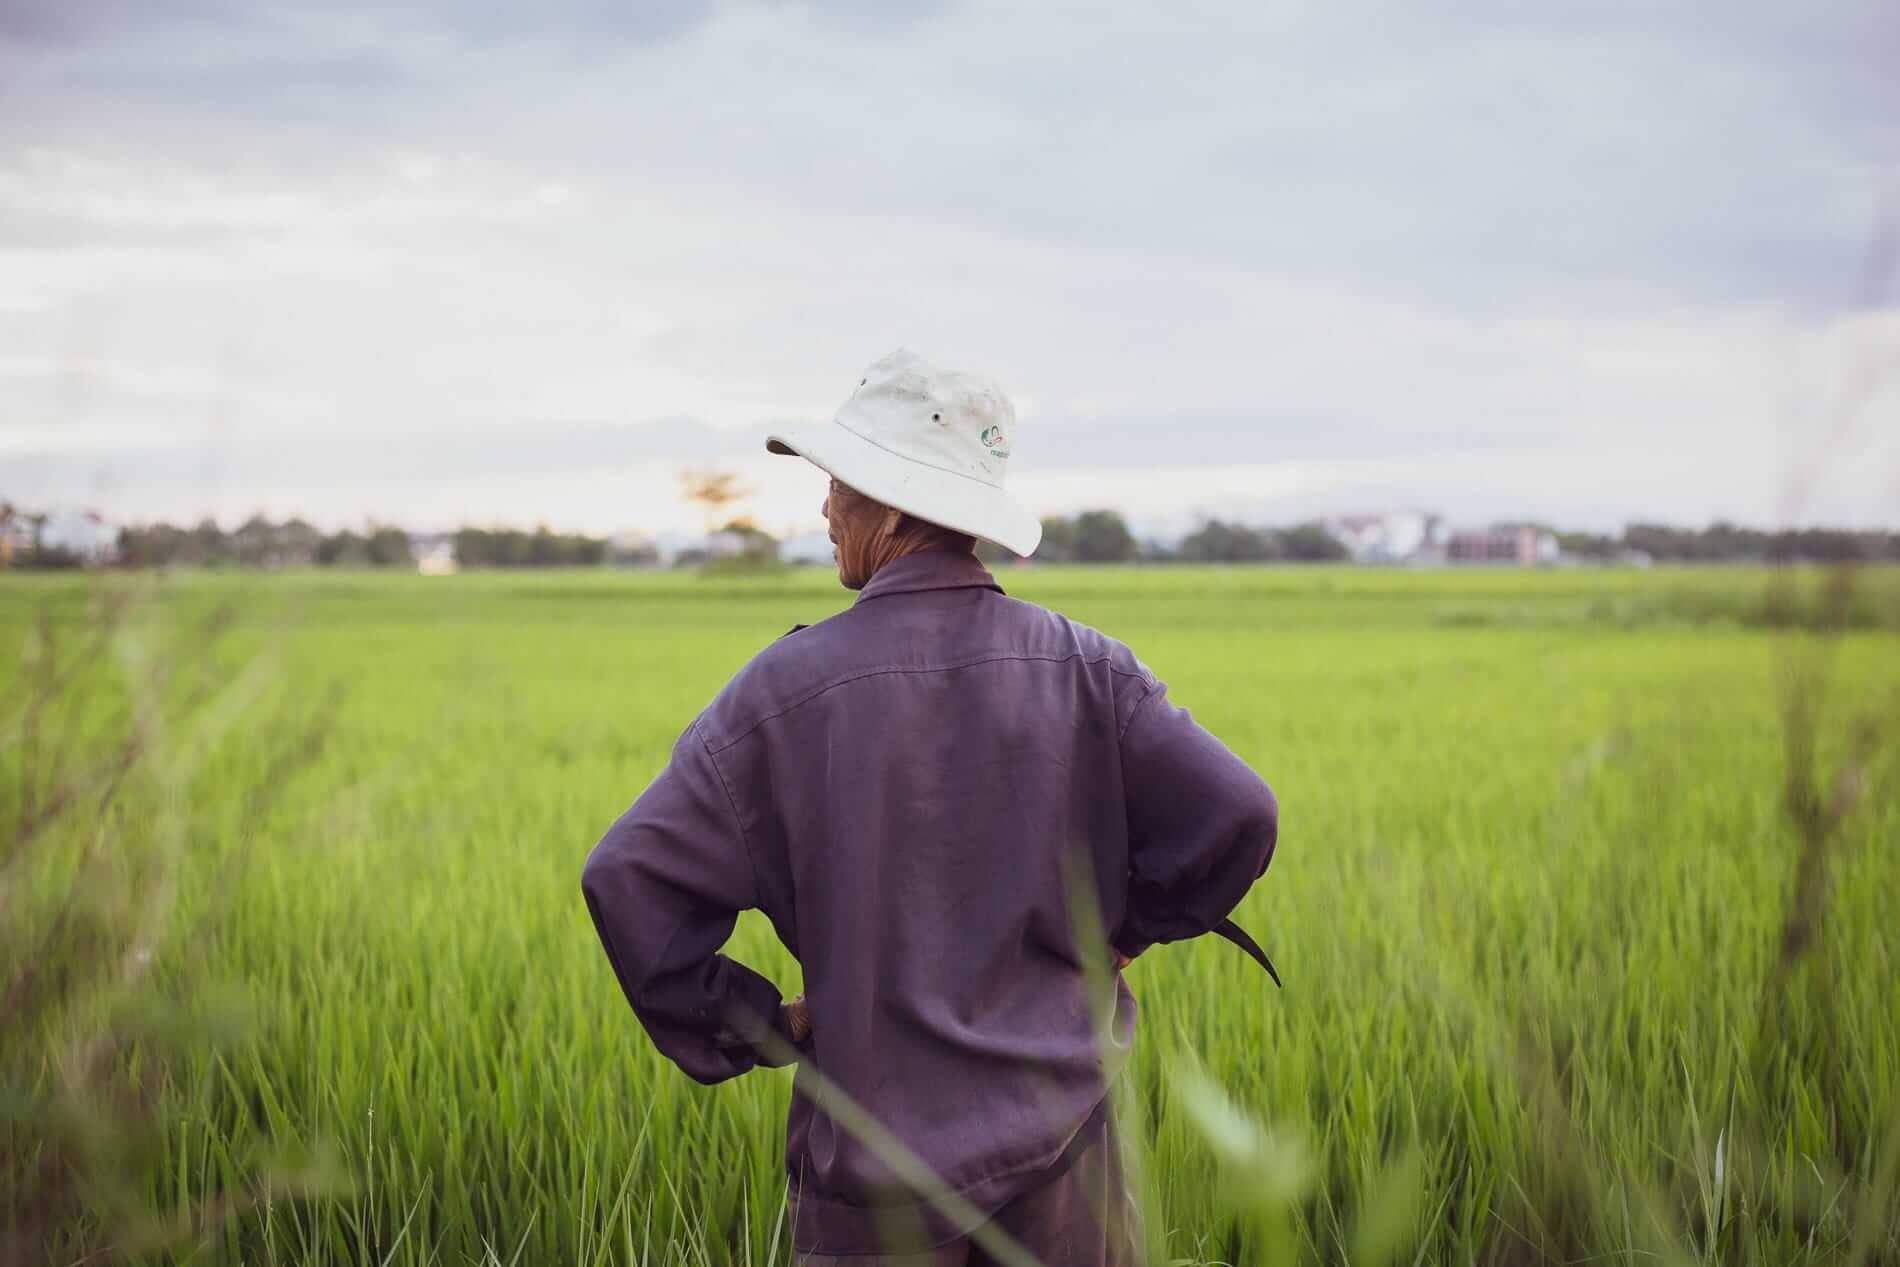 Rice is harvested twice a year in the fields of Hoi An